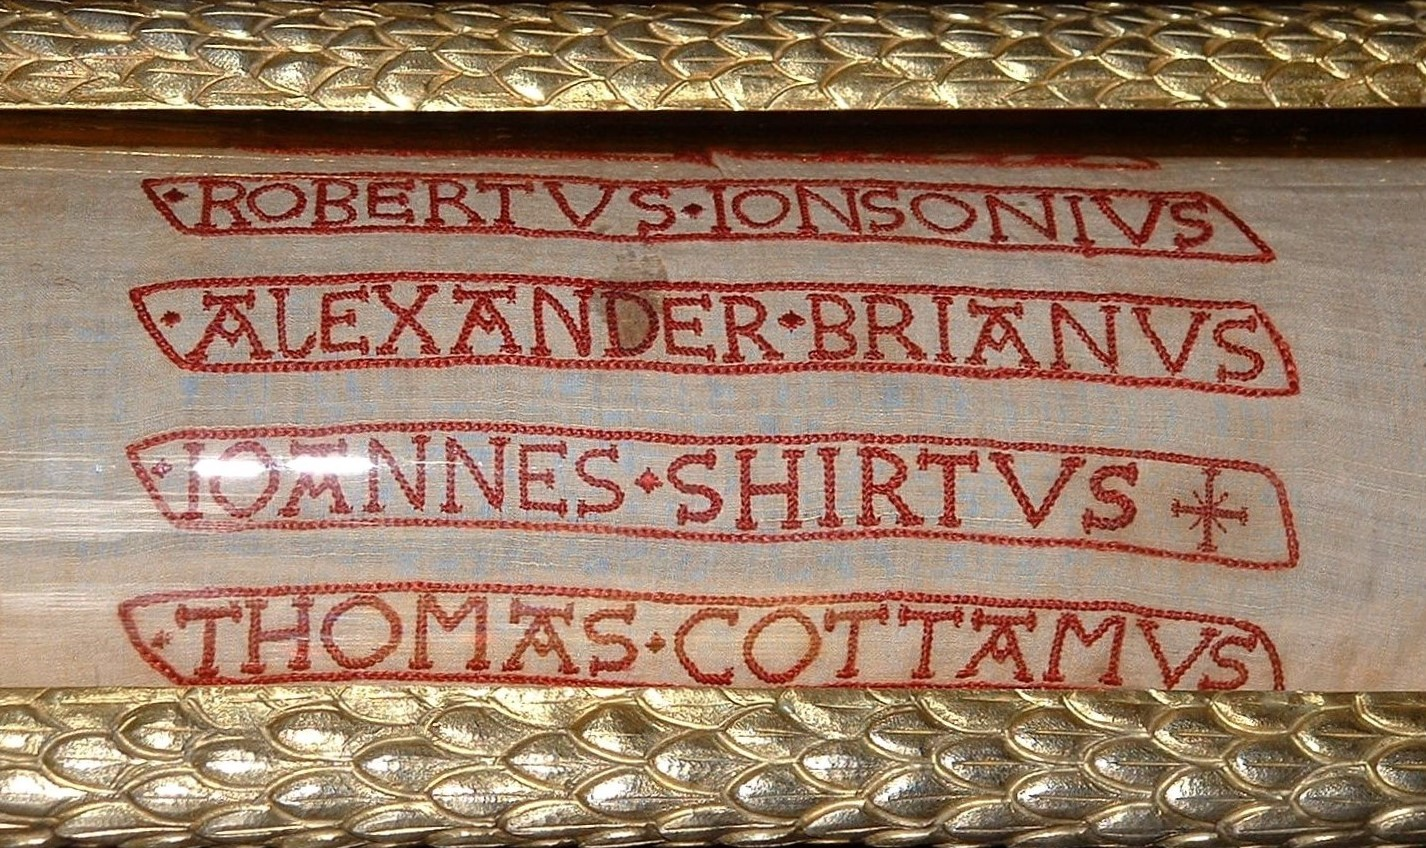 Colour photograph showing close up the names in red stitching with each name surrounded by a red stitched box. The names are: Robertus Ionsonius, Alexander Brianus, Ioannes Shirtus and Thomas Cottamus.